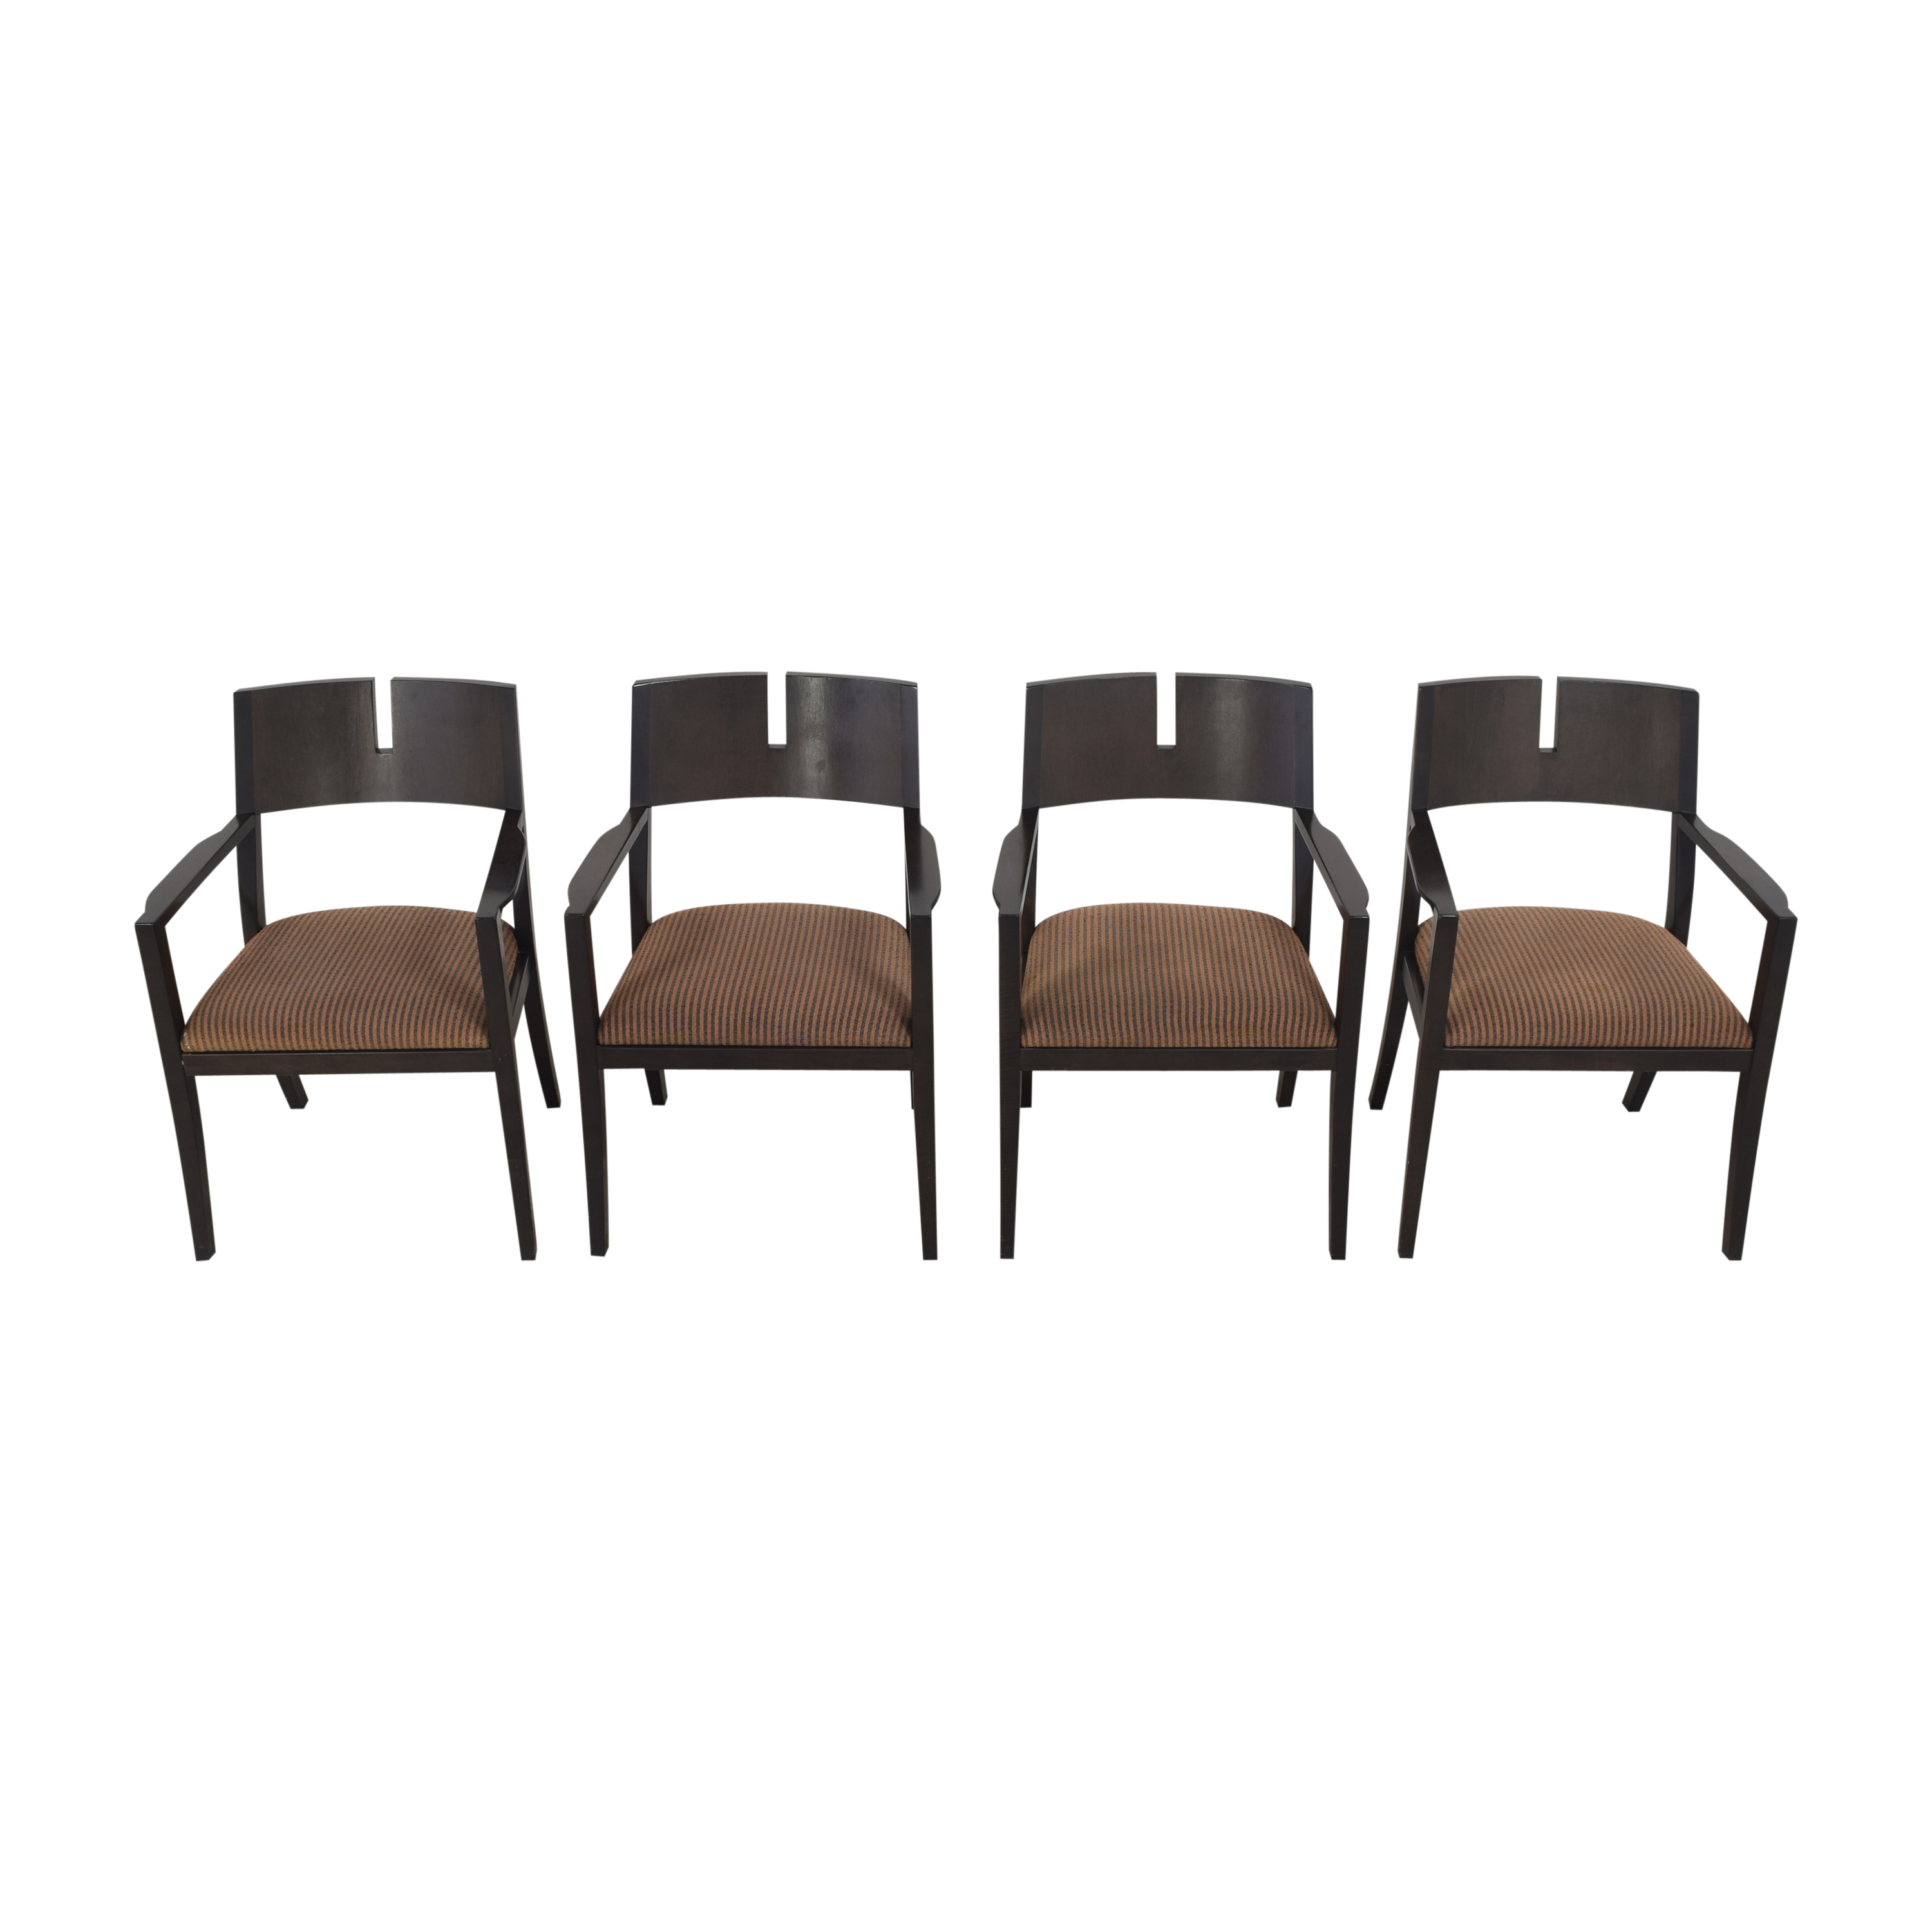 Martin Brattrud Martin Brattrud Upholstered Dining Chairs for sale